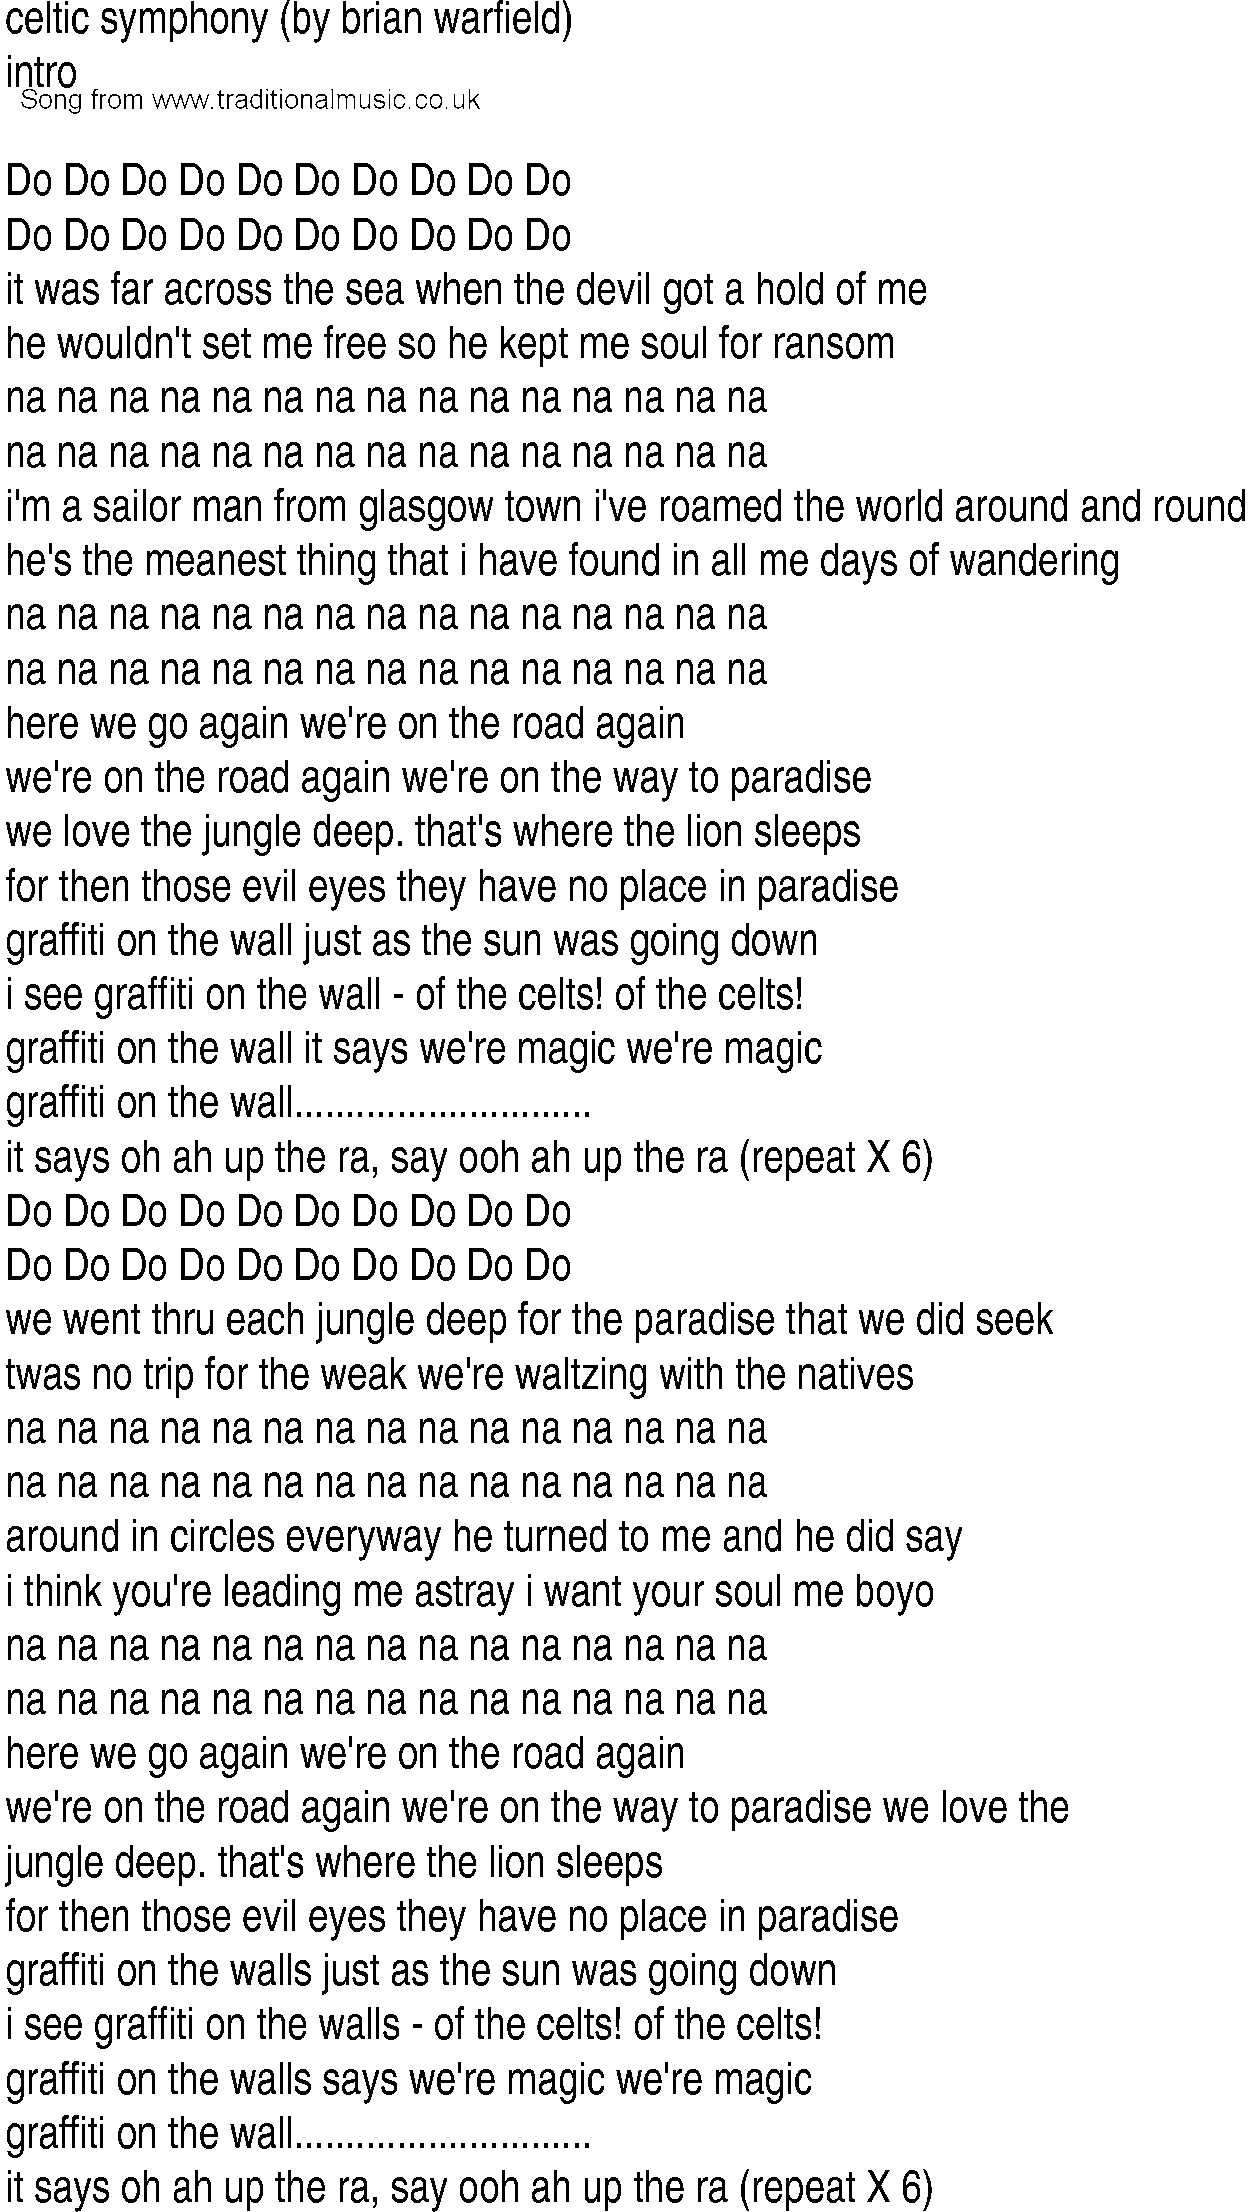 Download song lyrics as png graphics